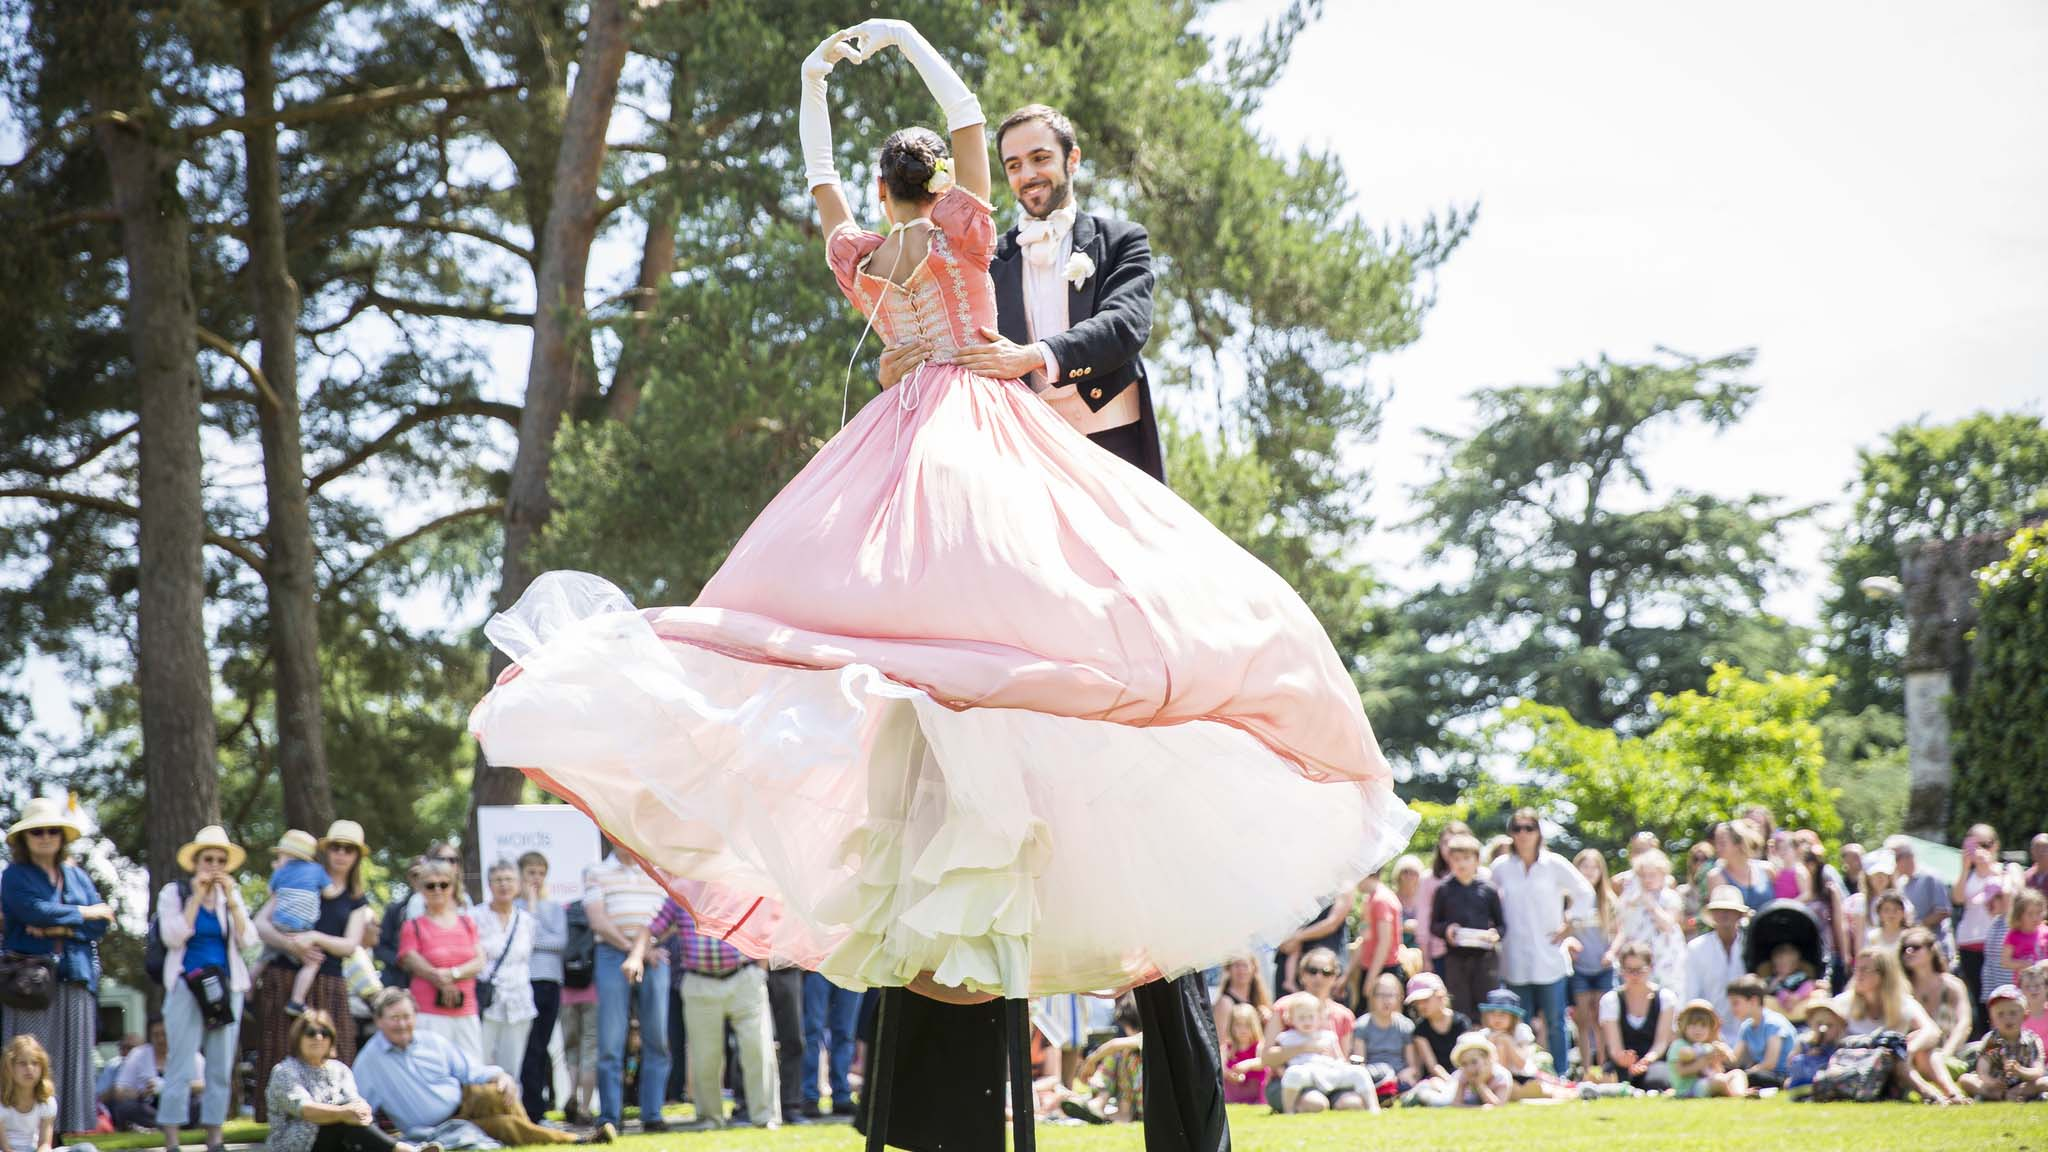 Community Day 2017 takes dance to new heights